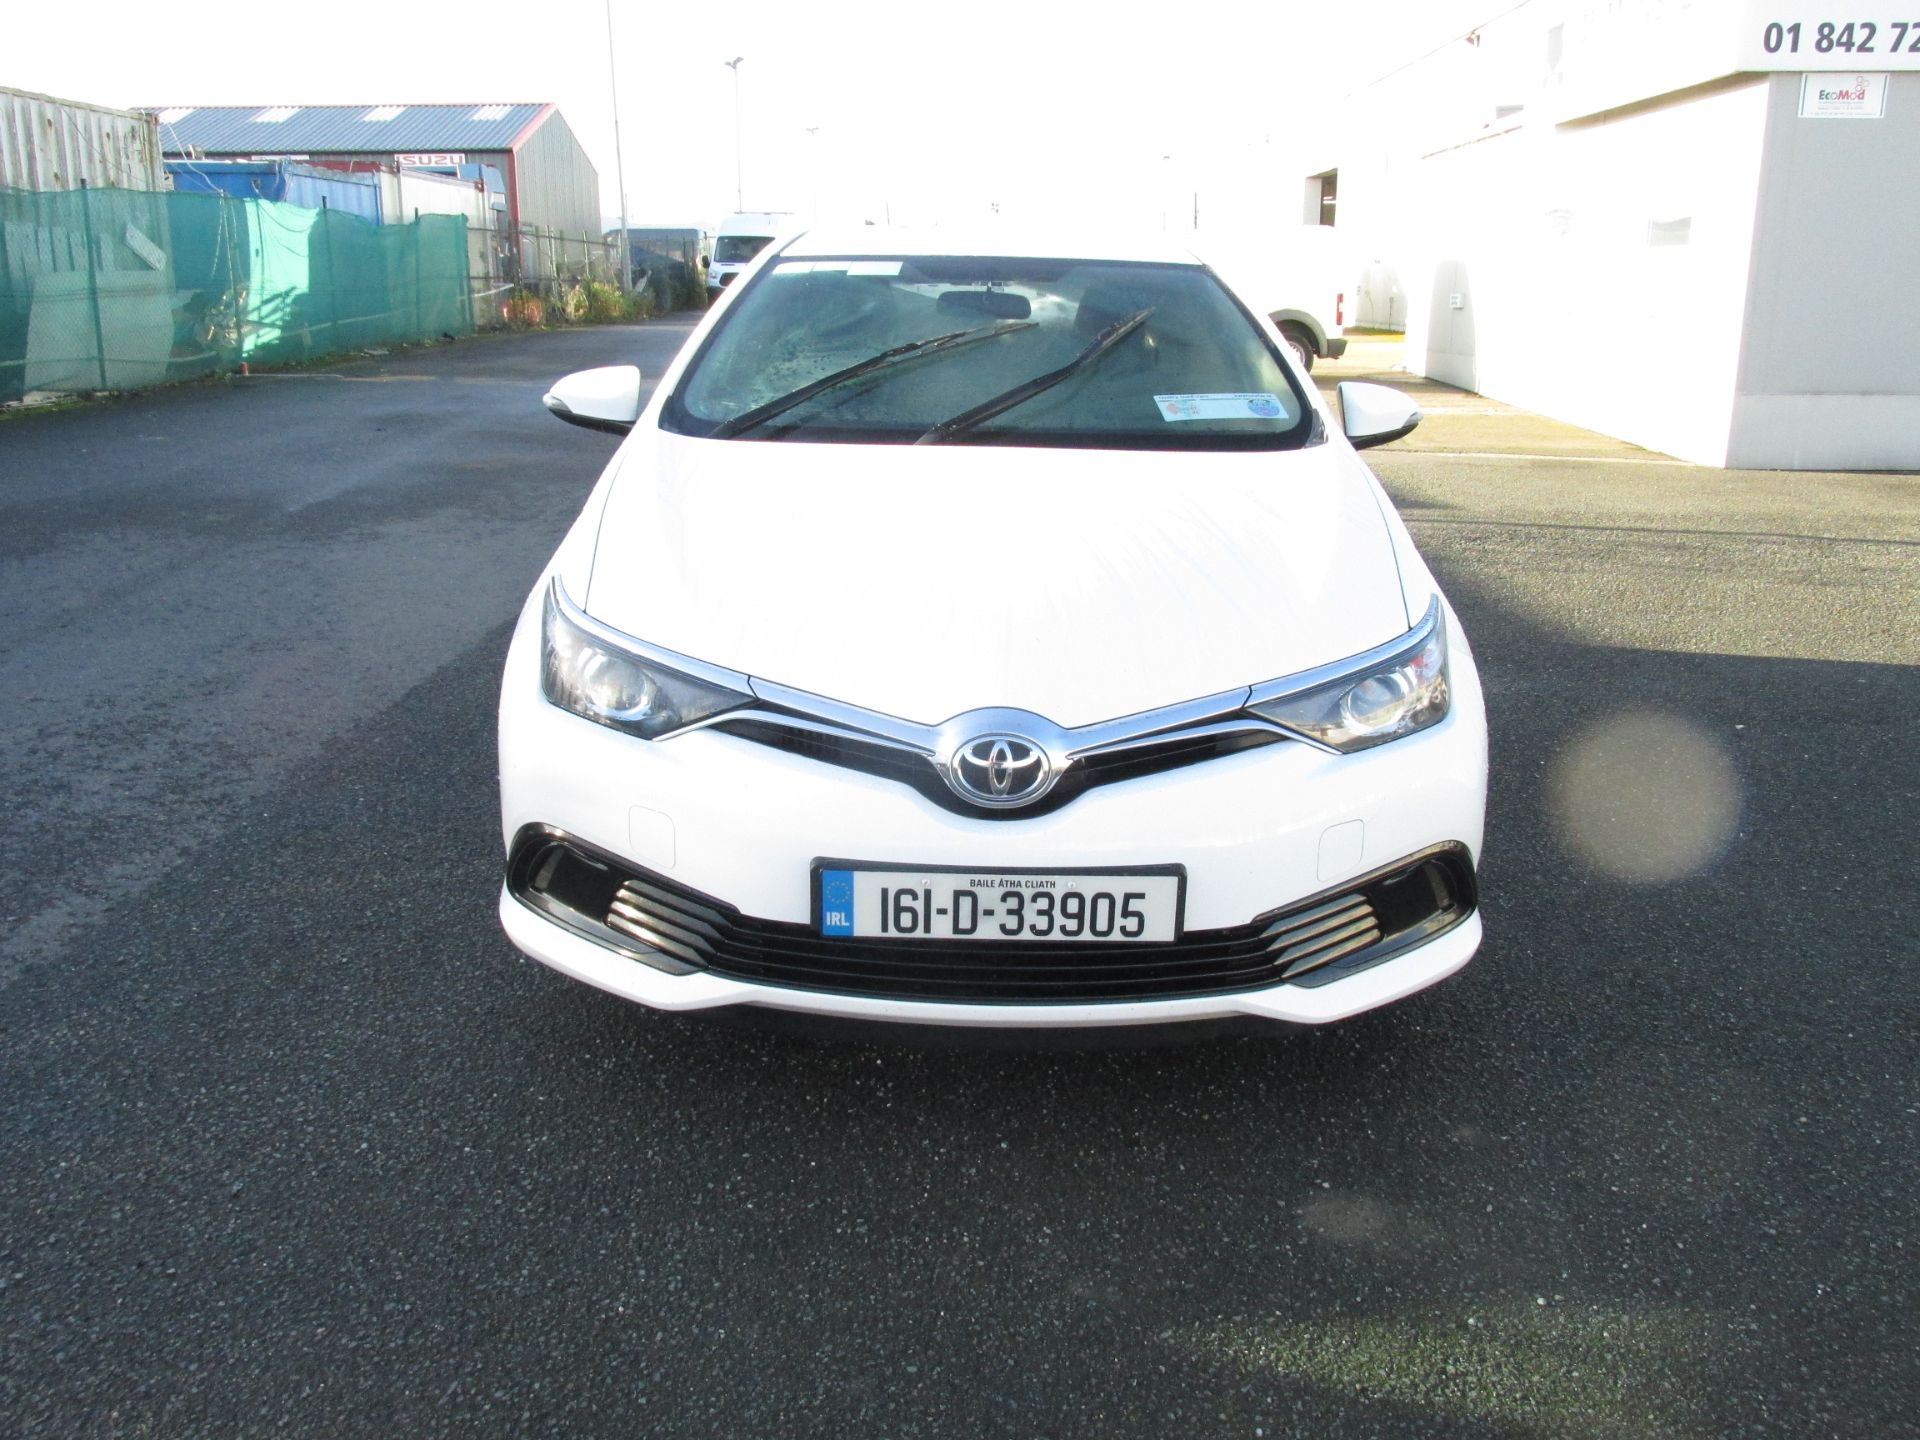 2016 Toyota Auris 1.4d-4d Terra 4DR click and collect call sales for more info (161D33905) Thumbnail 2